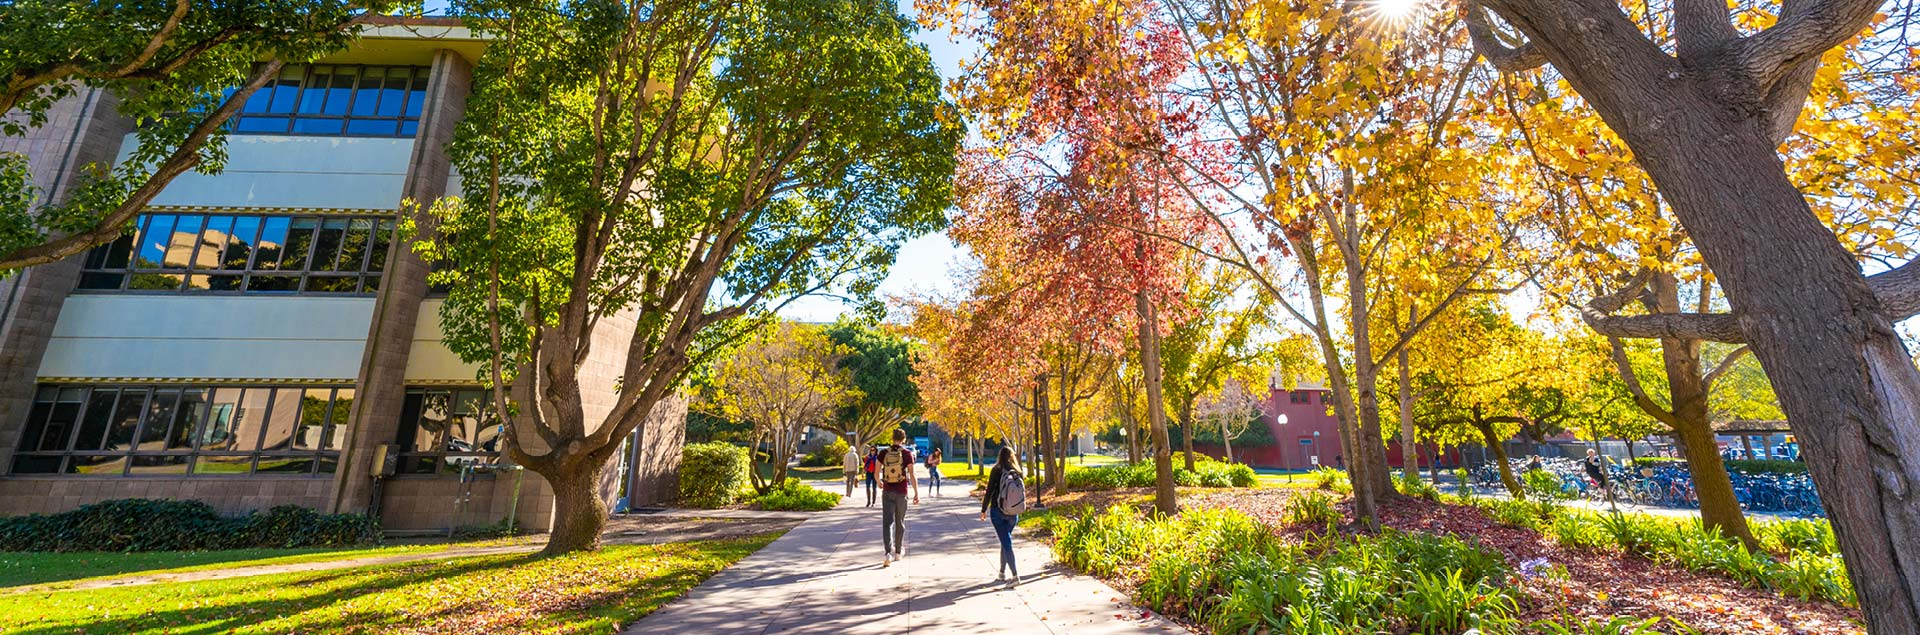 Students walking down a tree-lined walkway on campus